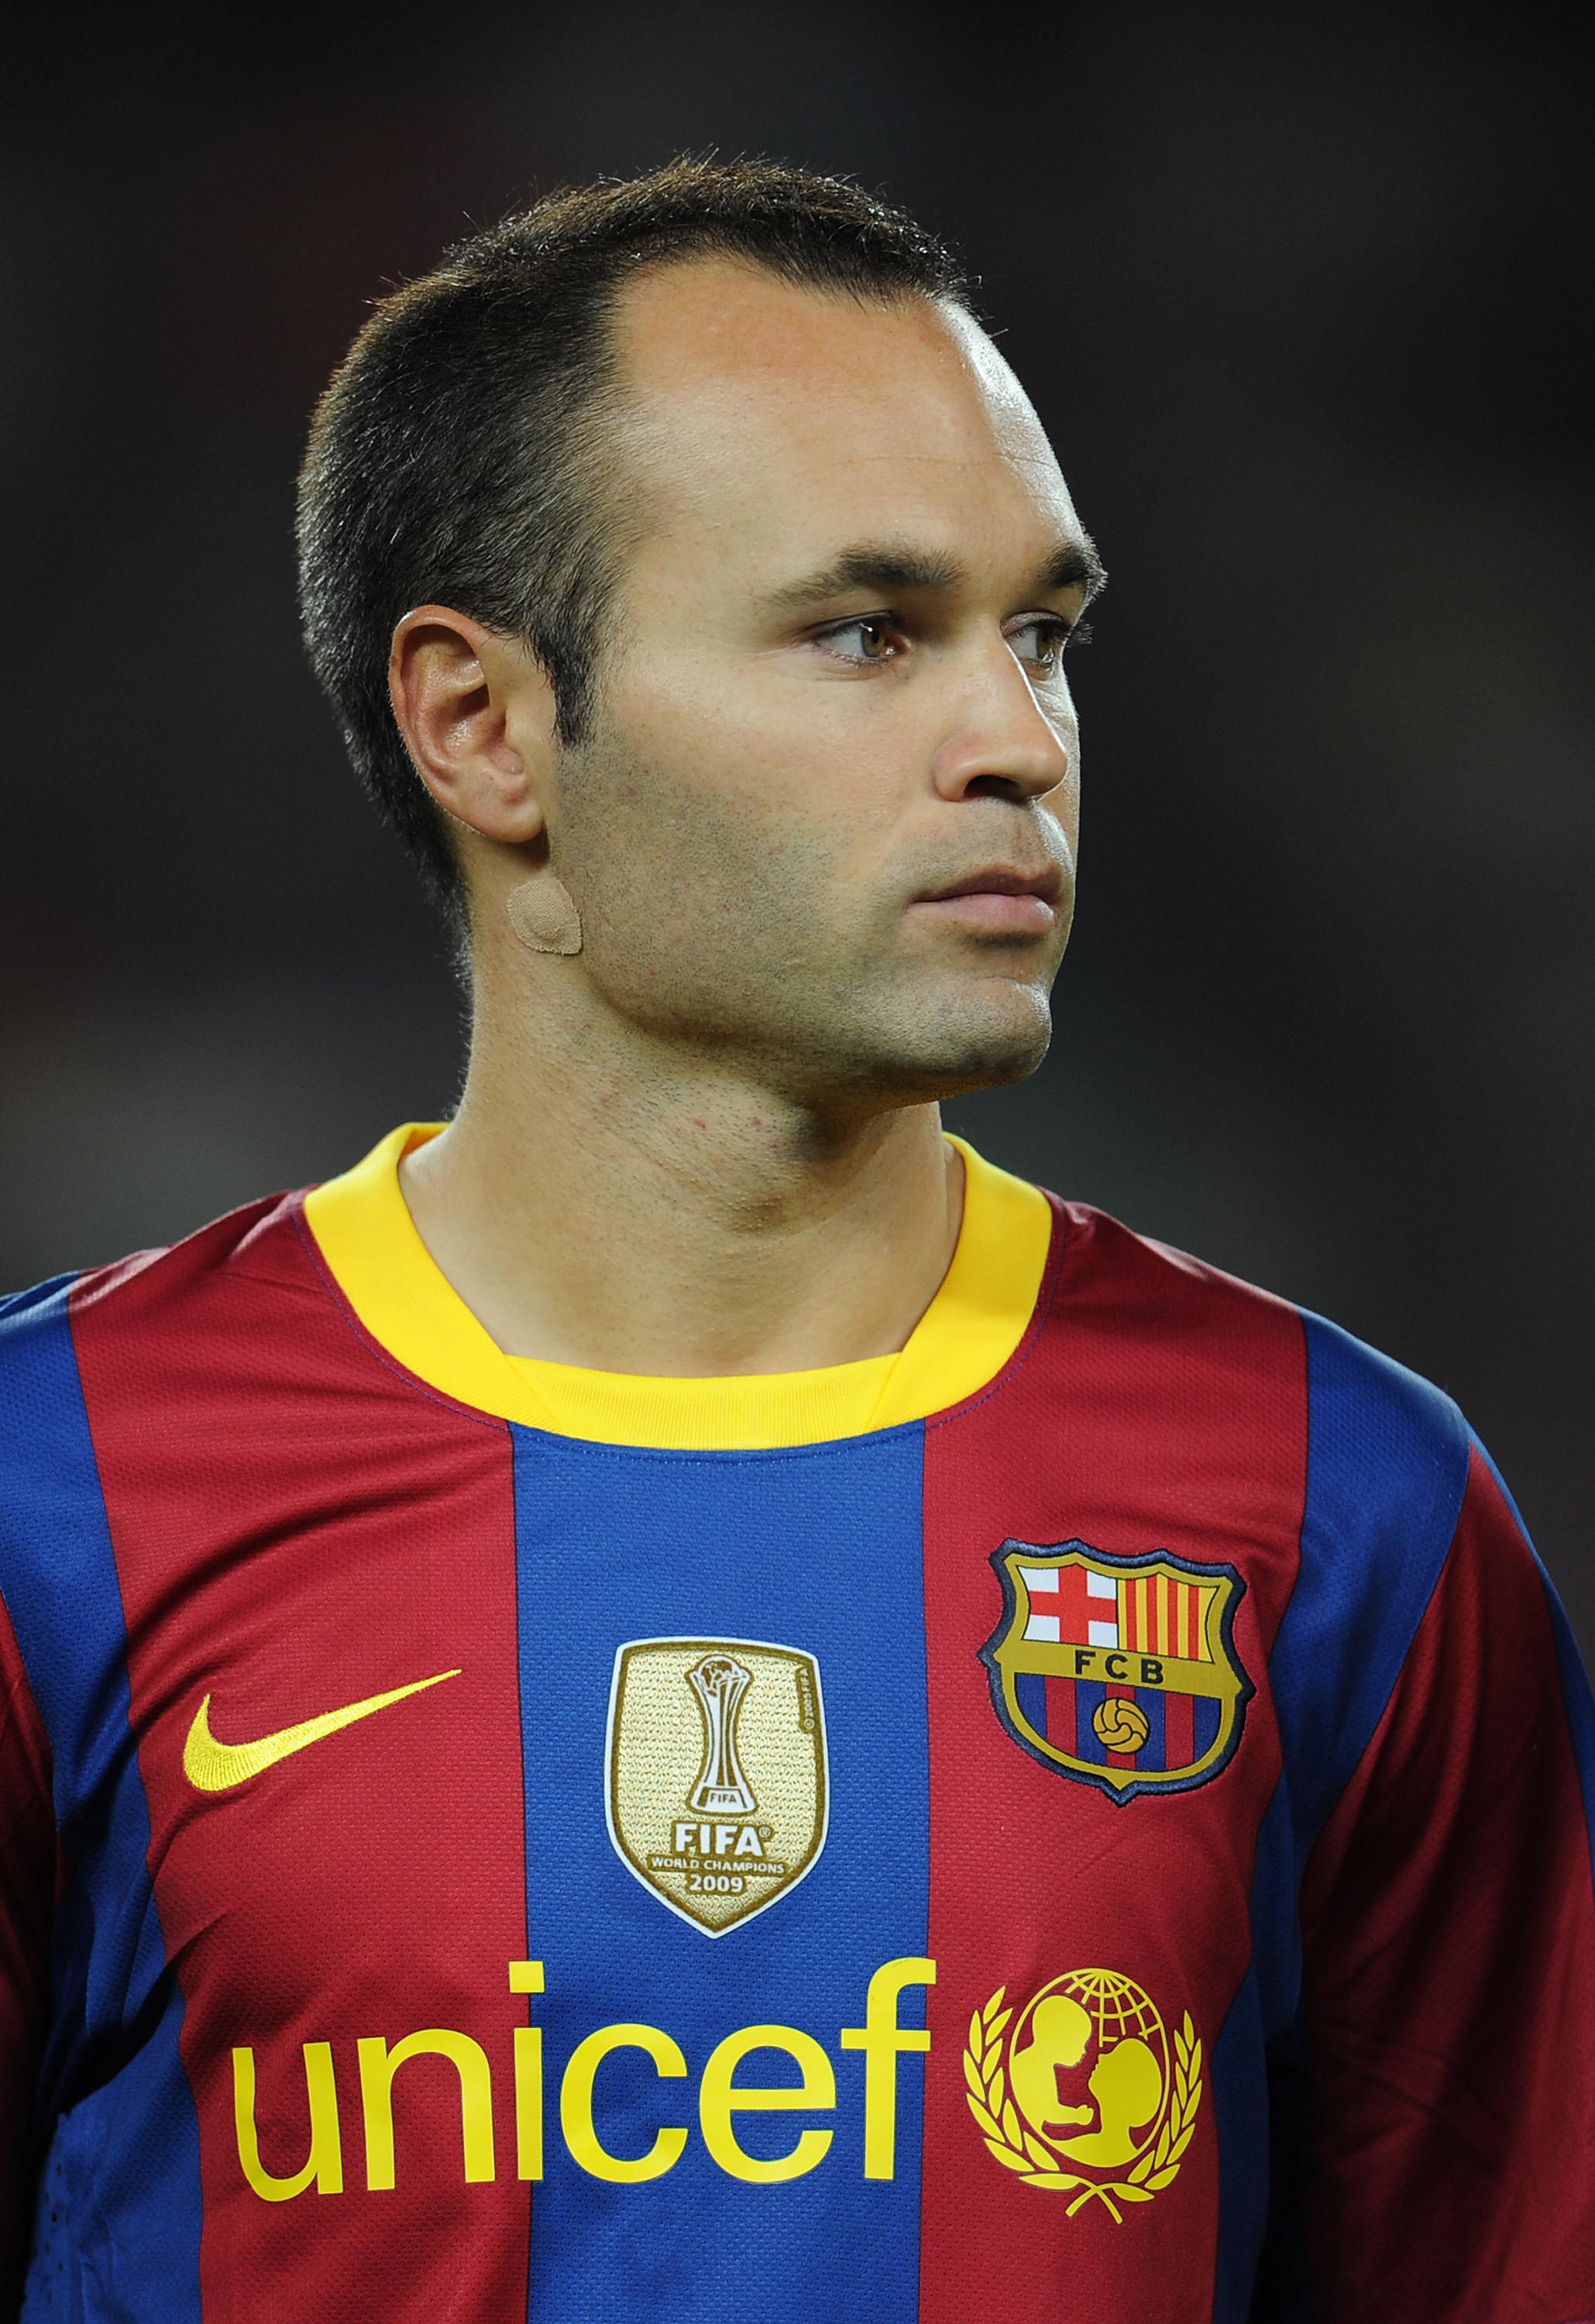 BARCELONA, SPAIN - SEPTEMBER 14:  Andres Iniesta of Barcelona watches on prior to the start of the UEFA Champions League group D match between Barcelona and Panathinaikos on September 14, 2010 in Barcelona, Spain. Barcelona won the match 5-1.  (Photo by J